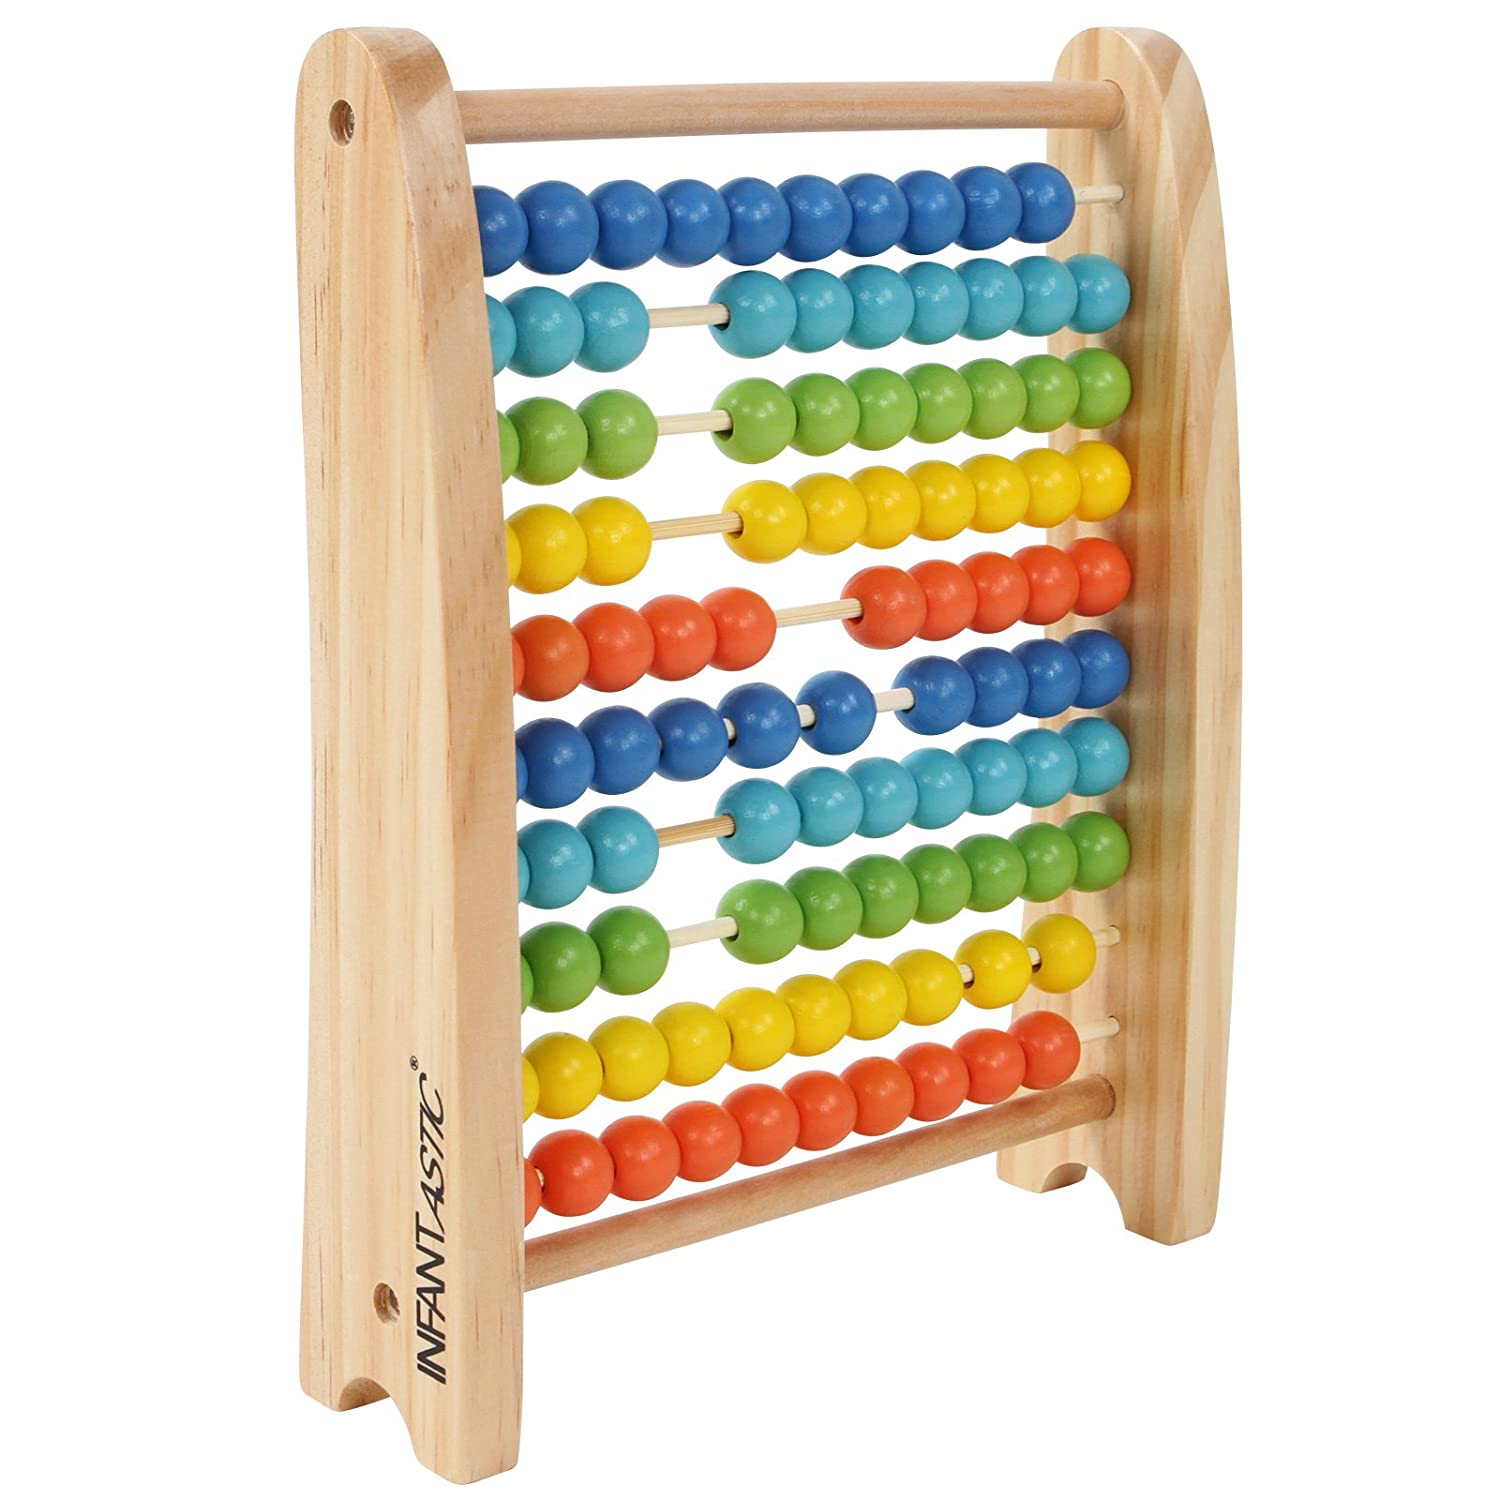 Infantastic Abacus (100 Colourful Wooden Beads) Basic Arithmetic Educational Kid Children Learning Counting Number Math Fun Toy